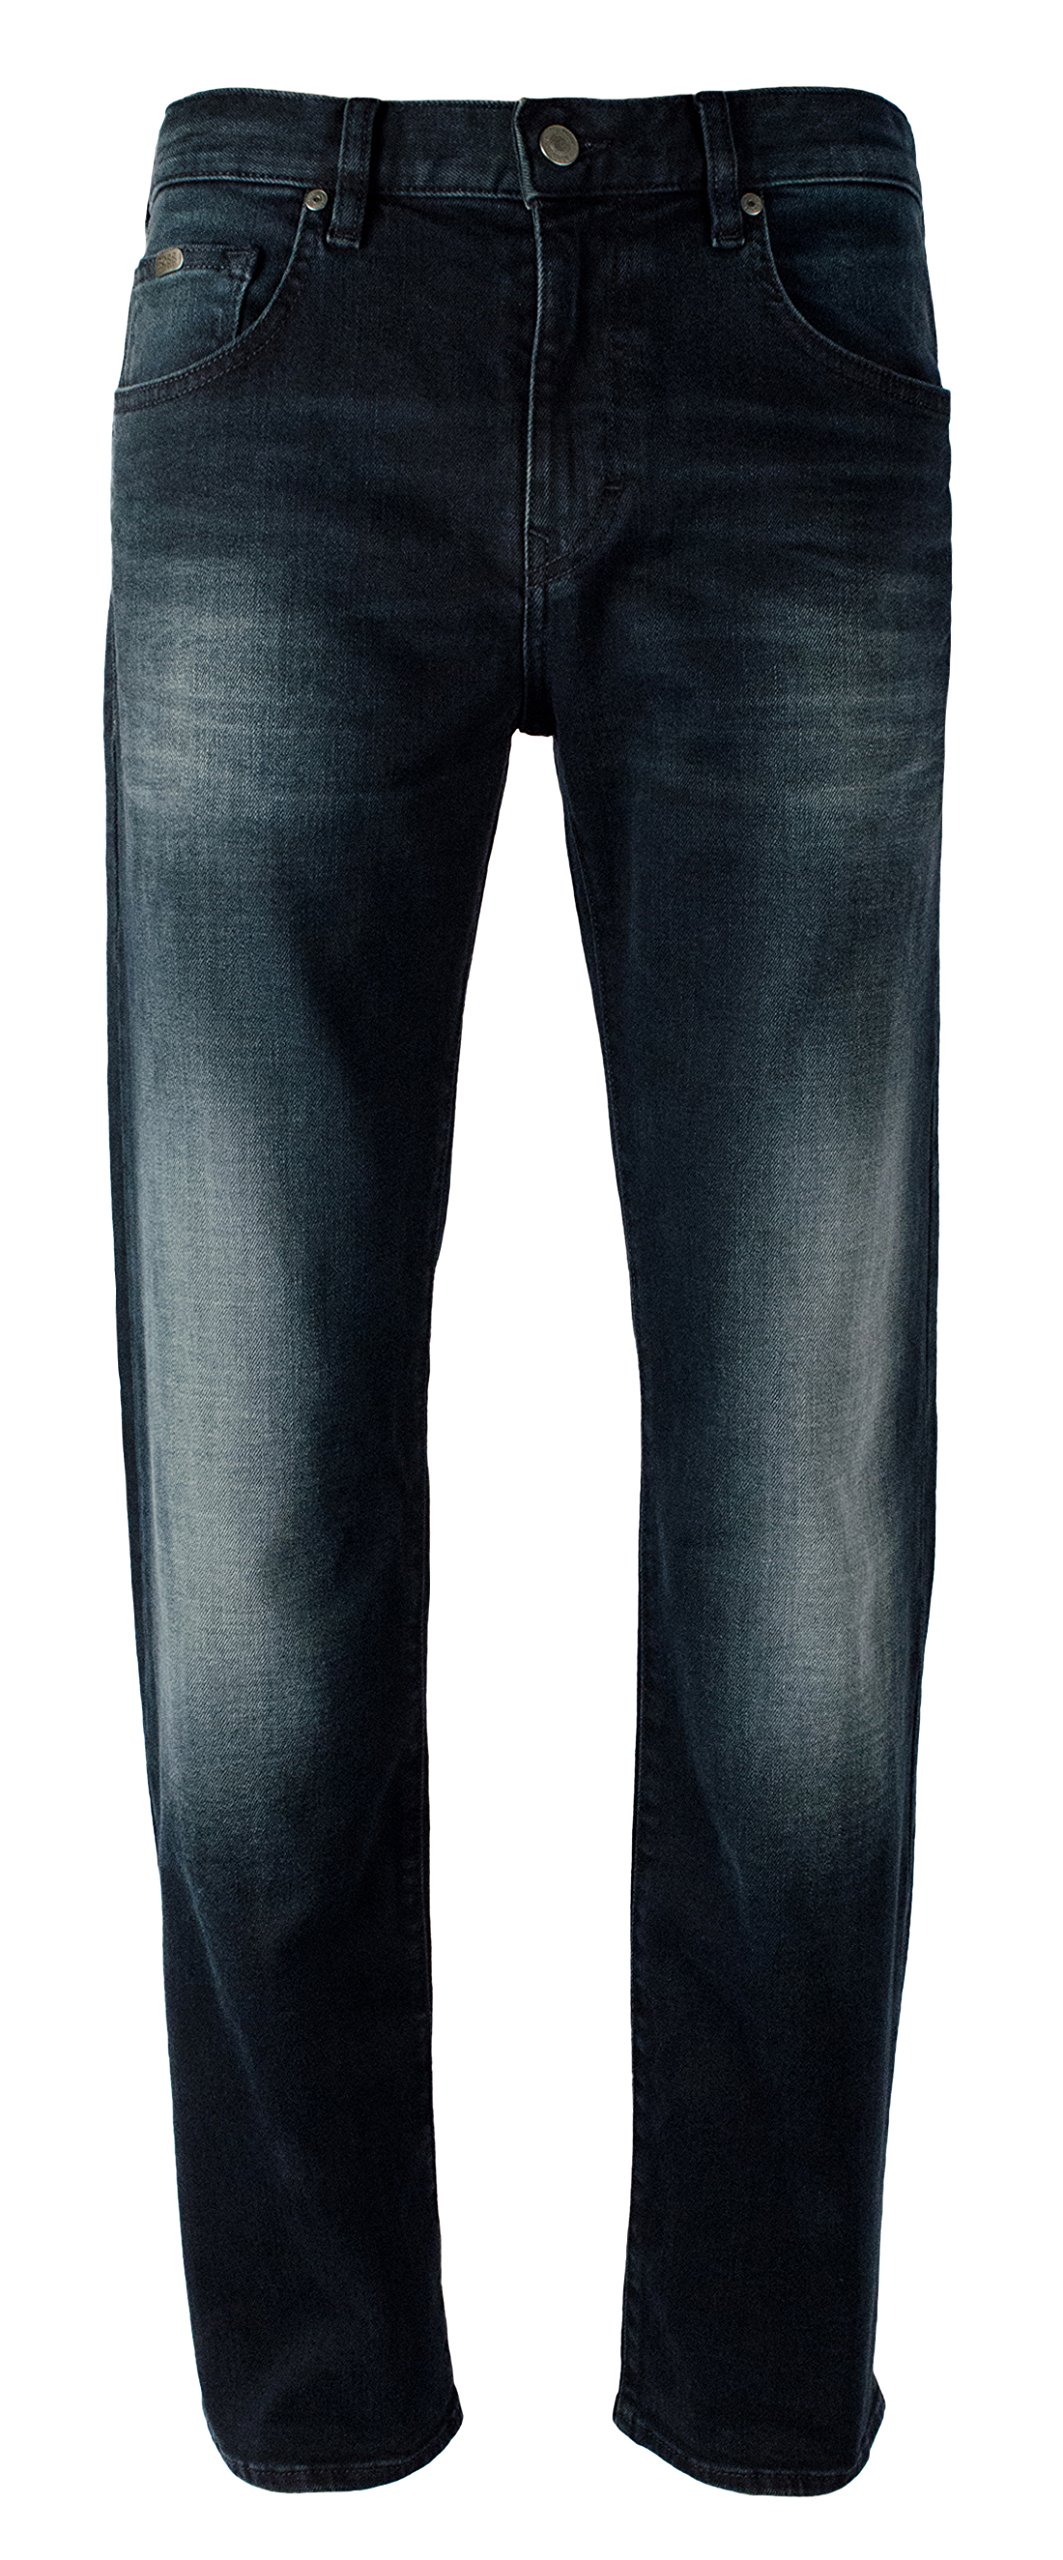 Hugo Boss Men's Kansas Relaxed Fit Green Label Stretch Jeans-B-30Wx32L by HUGO BOSS